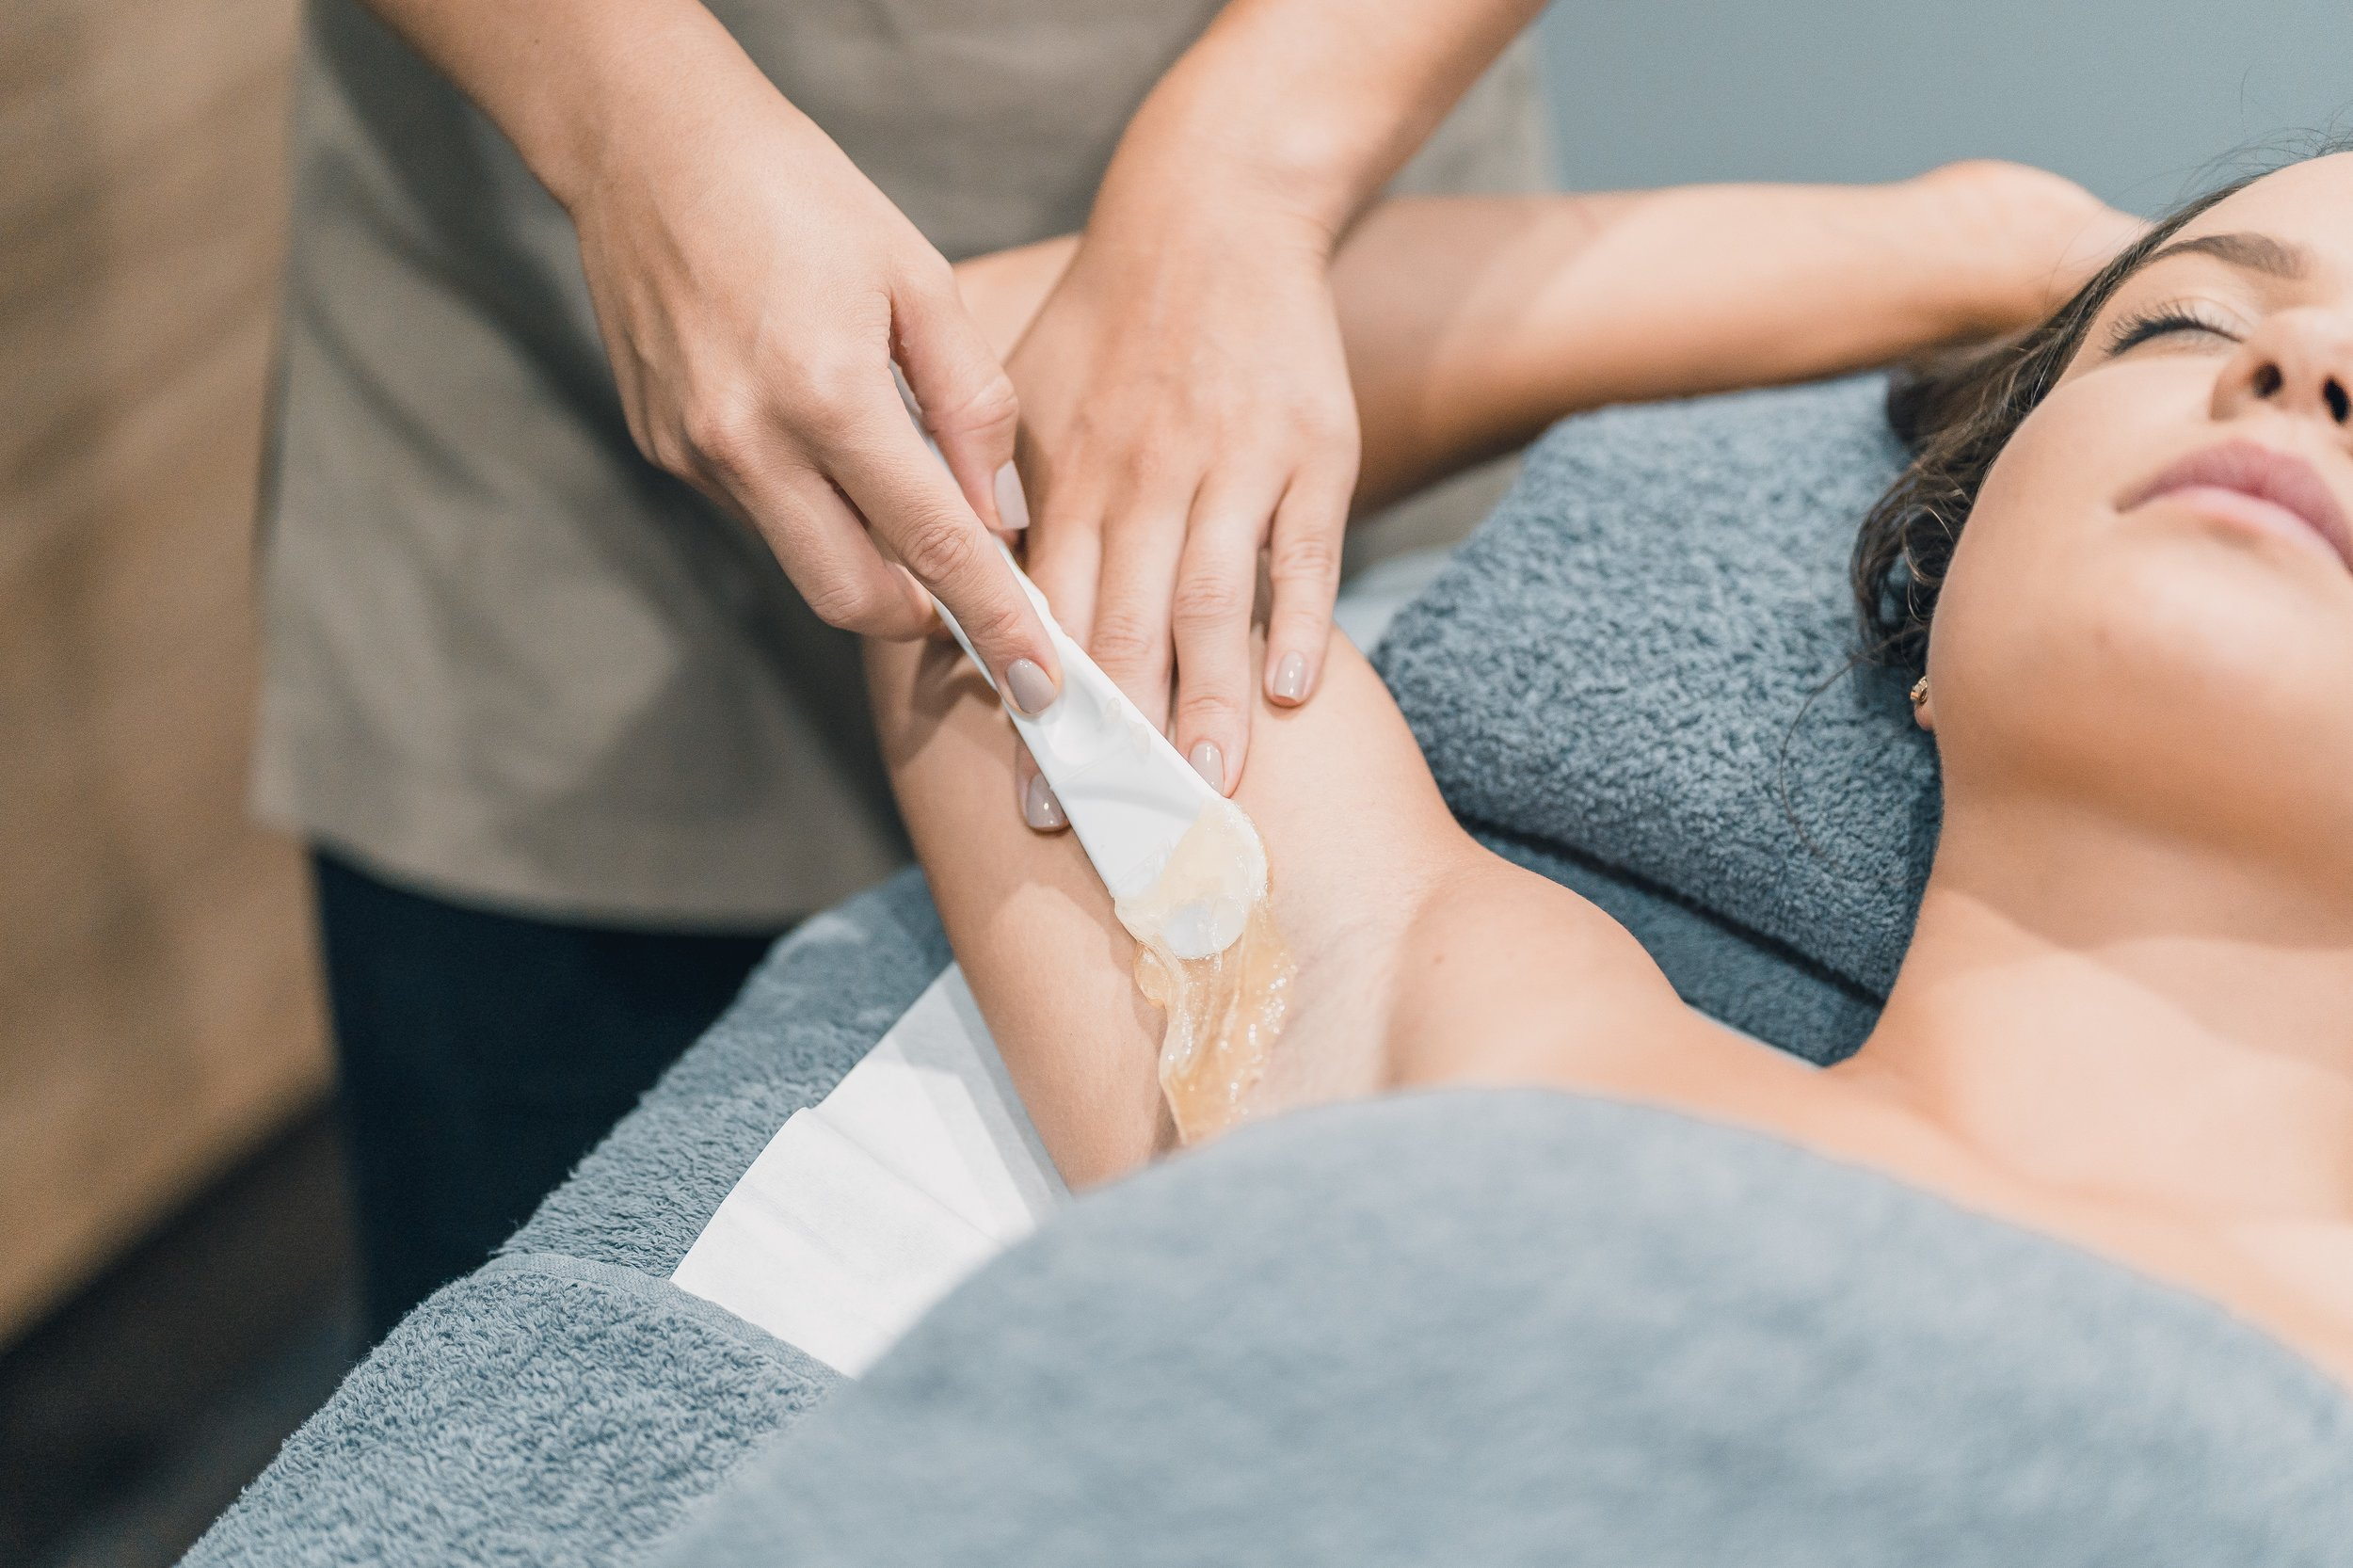 just for you - Our Spa therapists are hair removal specialists and take the utmost care to ensure all hair removal services are hygienic and comfortable.Please enjoy a 10% discount when booking 2 or more hair removal services.